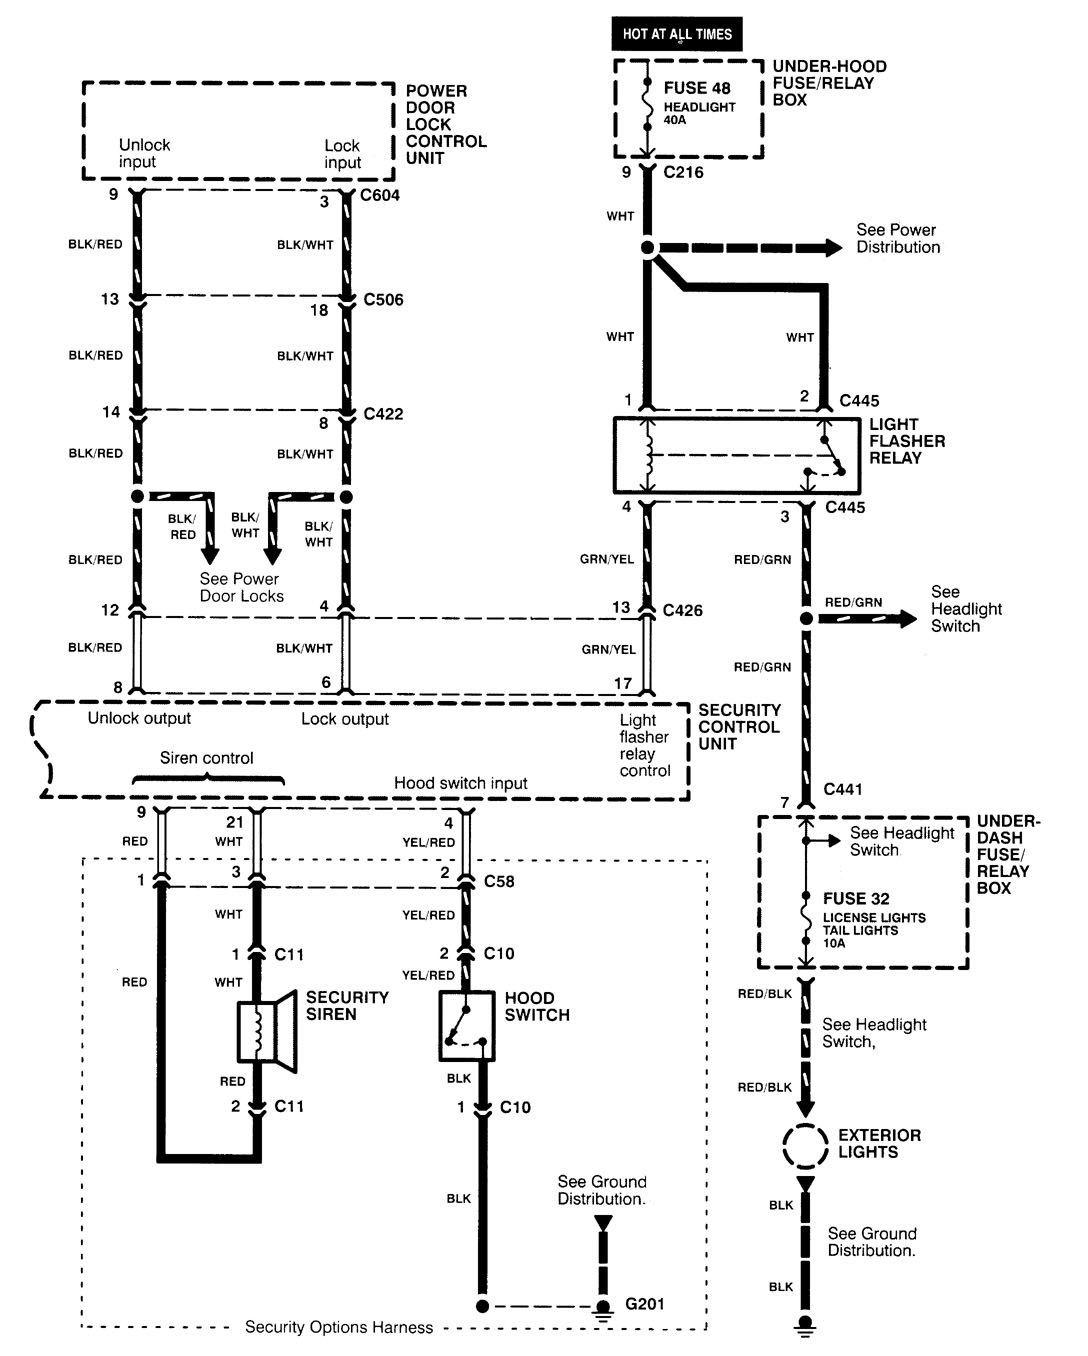 Acura Integra (2000 - 2001) - wiring diagrams - security/anti-theft -  Carknowledge.info   Wiring Diagram For 2000 Acura Integra      Carknowledge.info